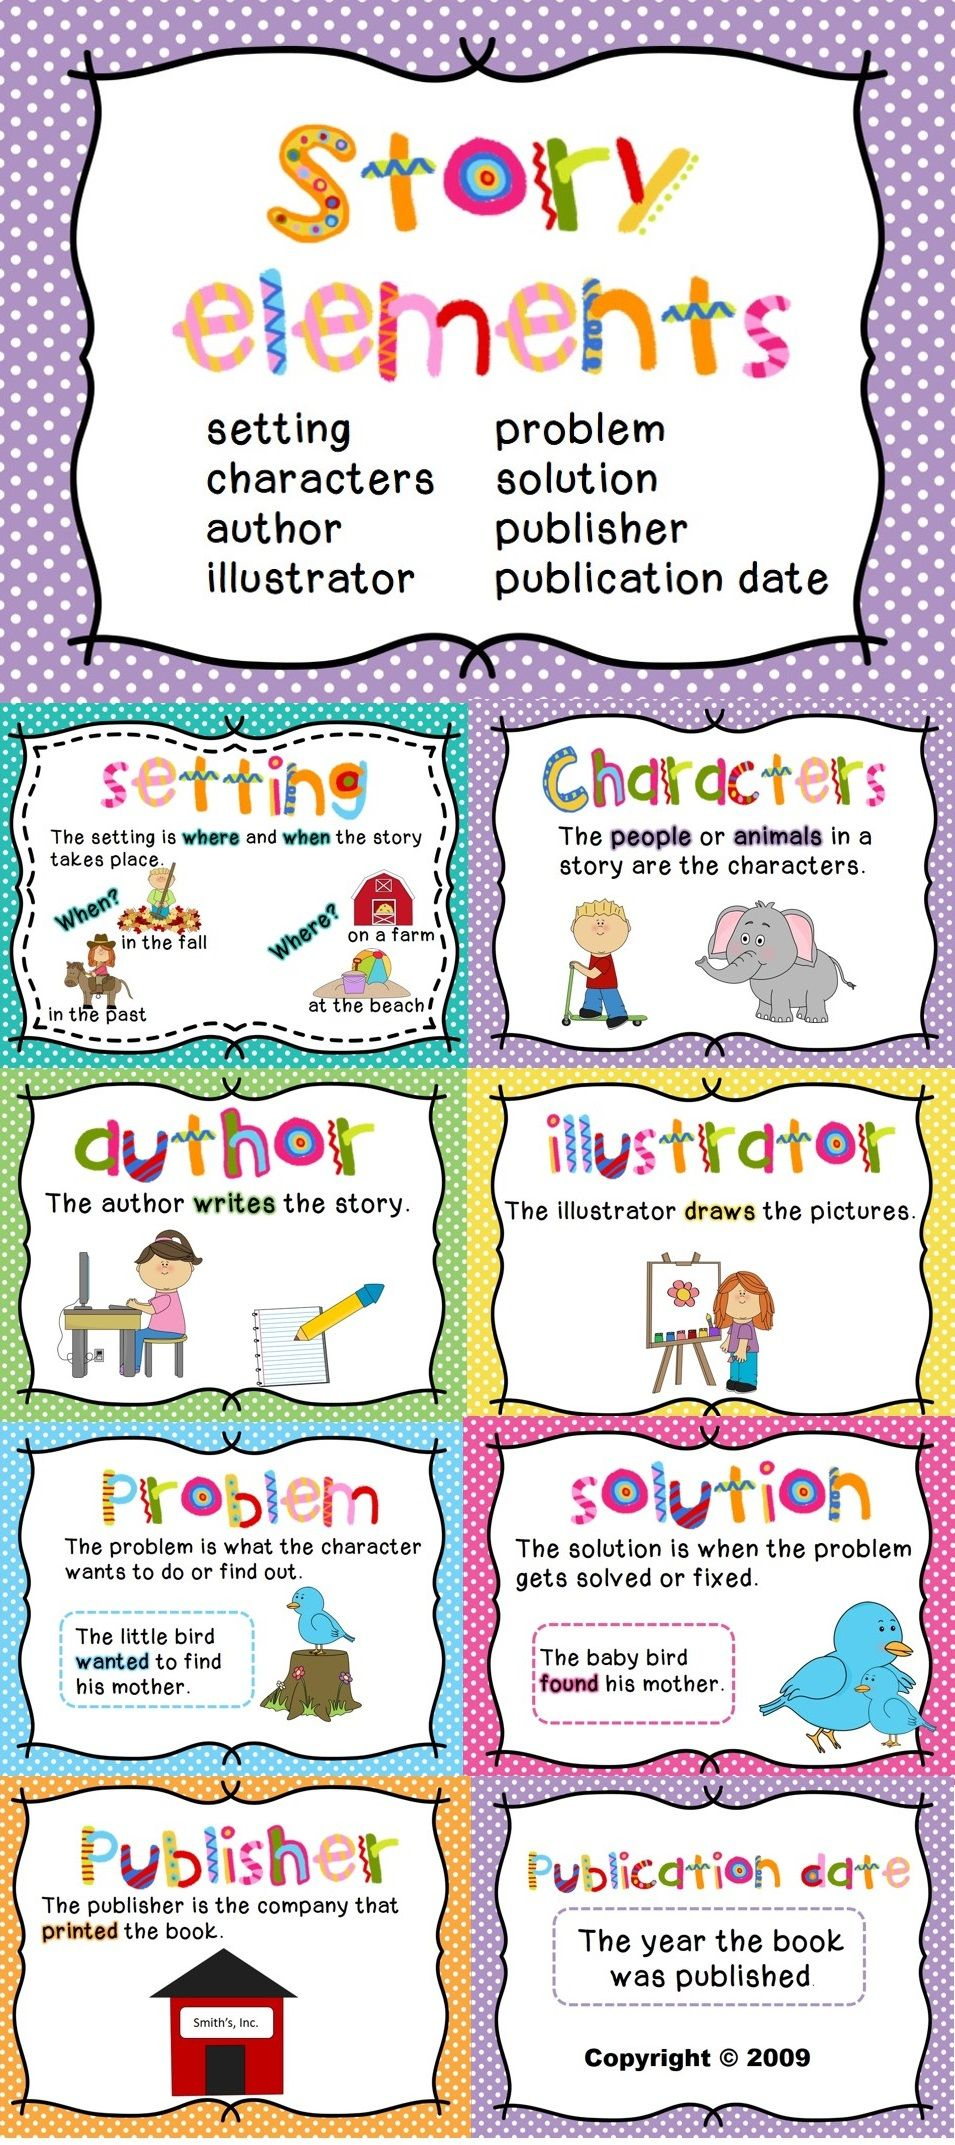 worksheet Elements Of A Story Worksheet story elements worksheet title character setting problem this set contains posters for 8 characters author illustrator solution publisher and publication date